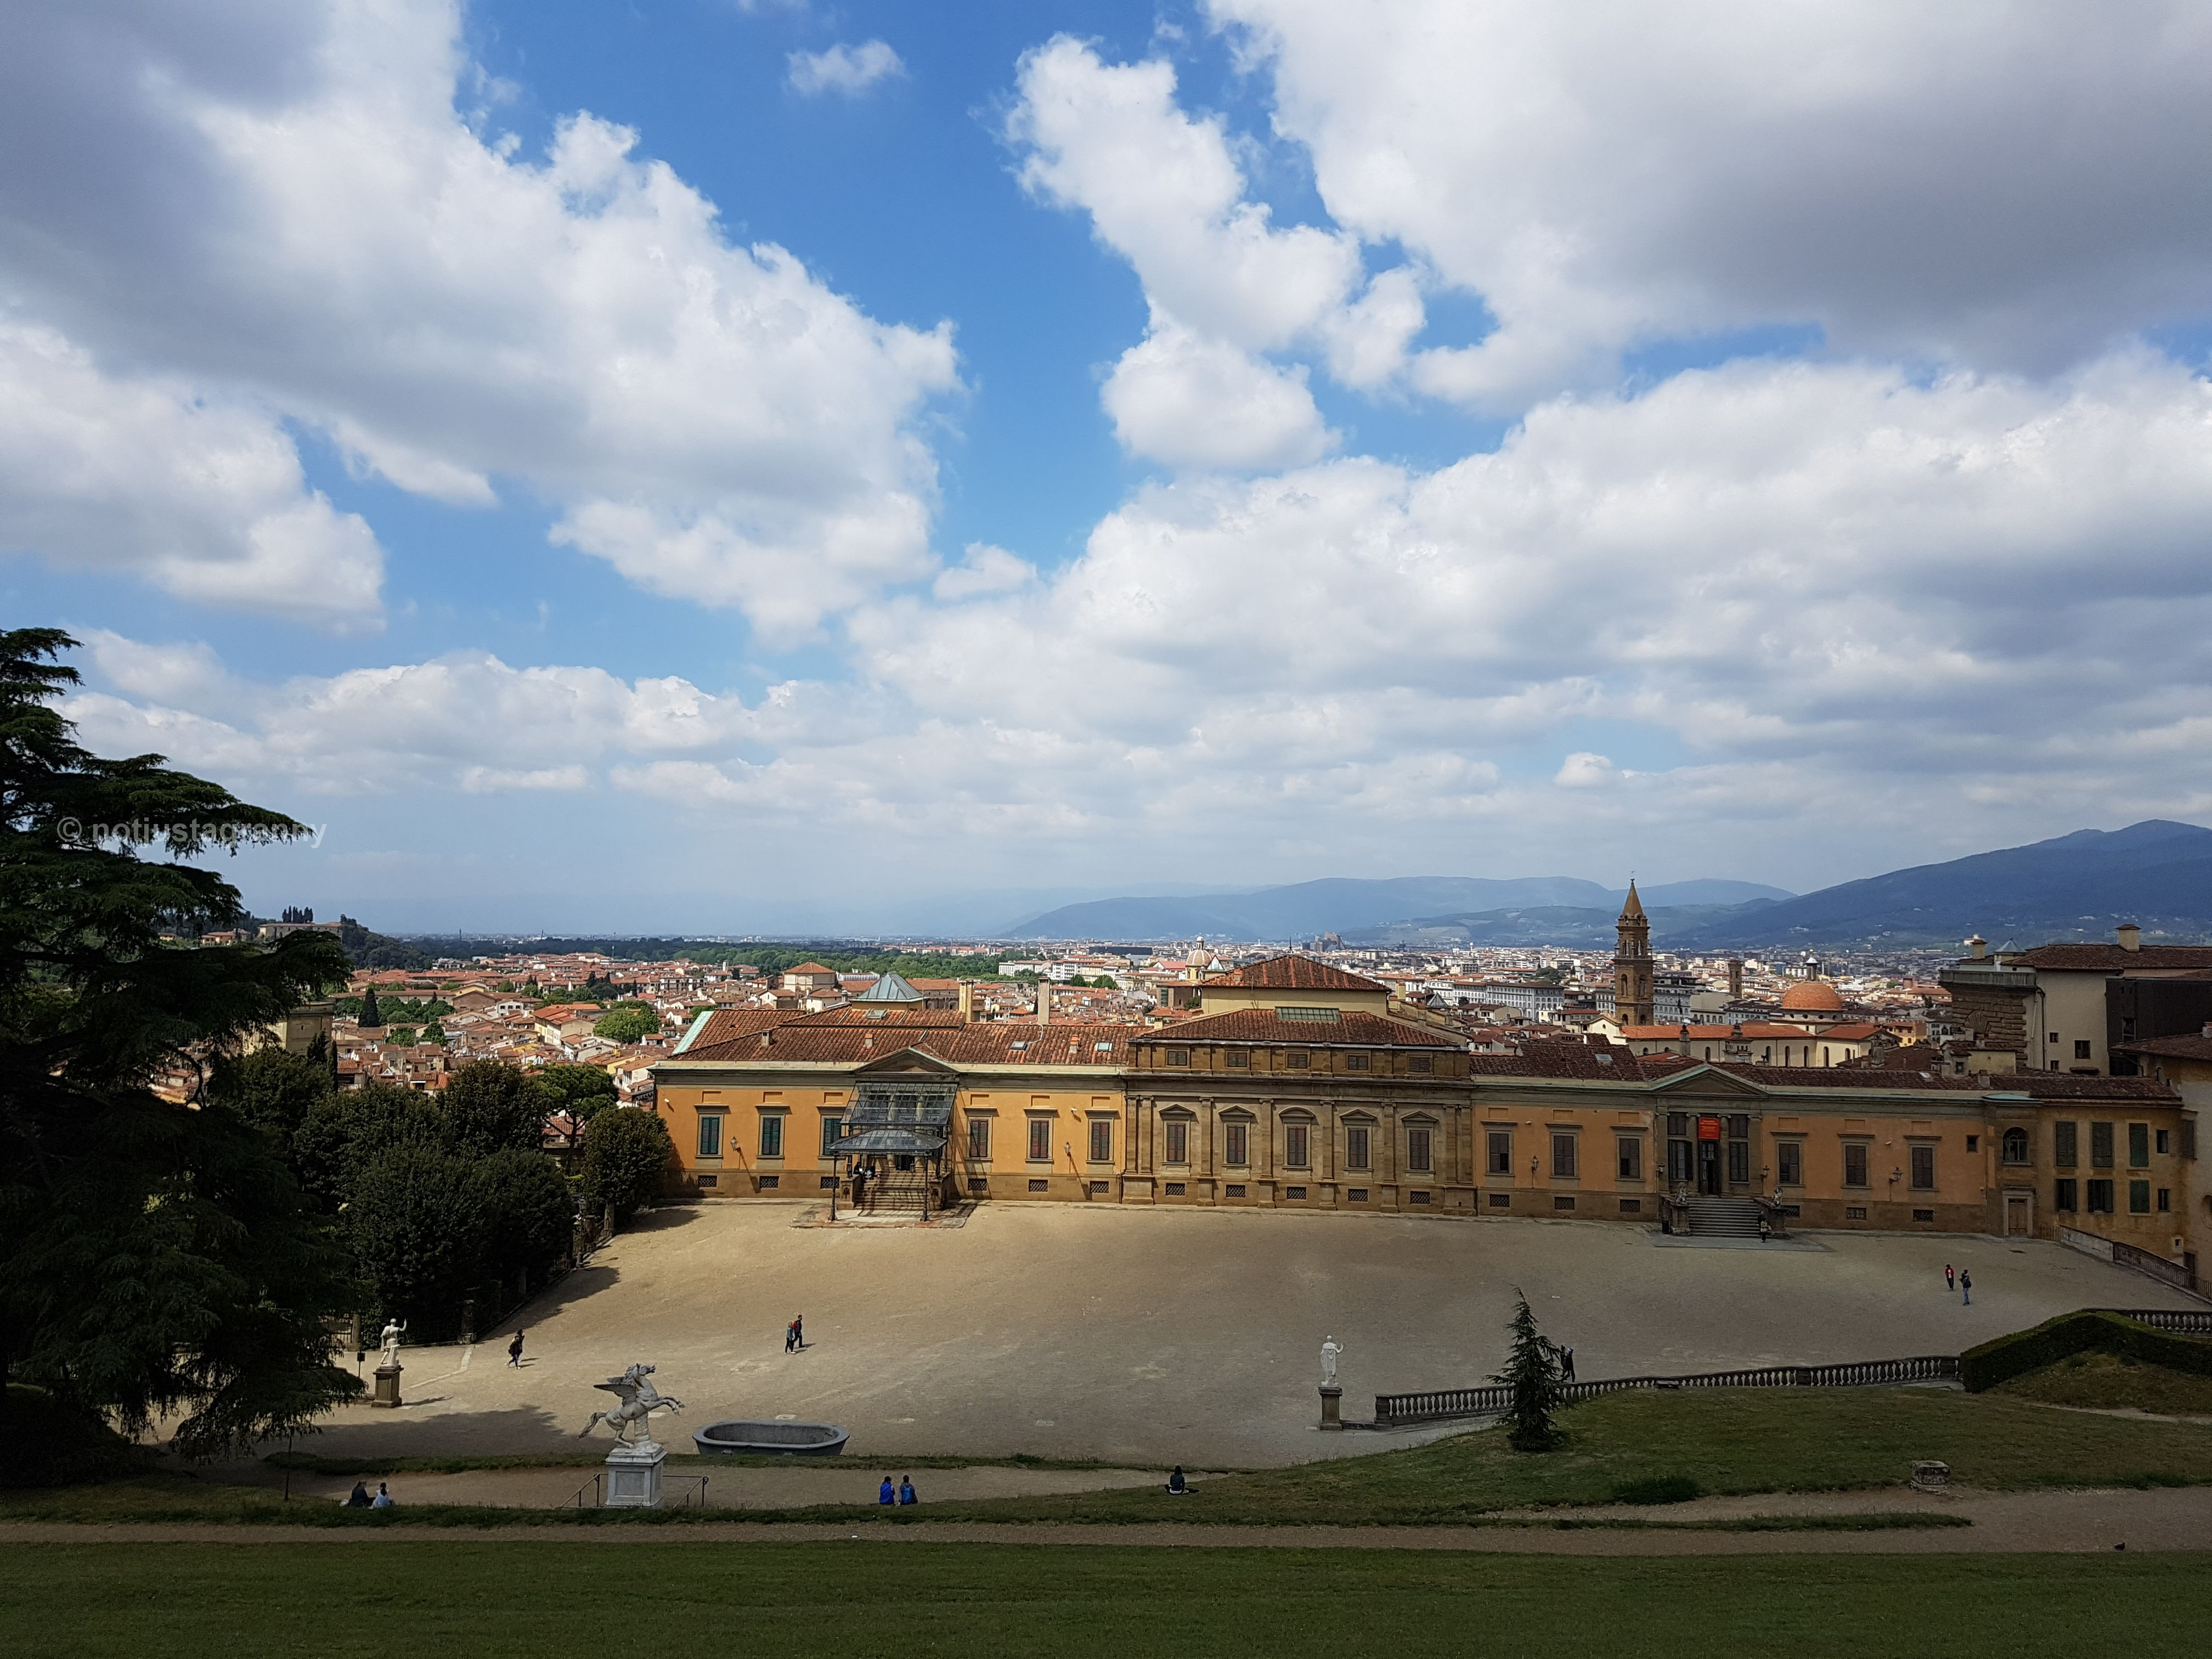 Palazzo Pitti - home of the Medici family